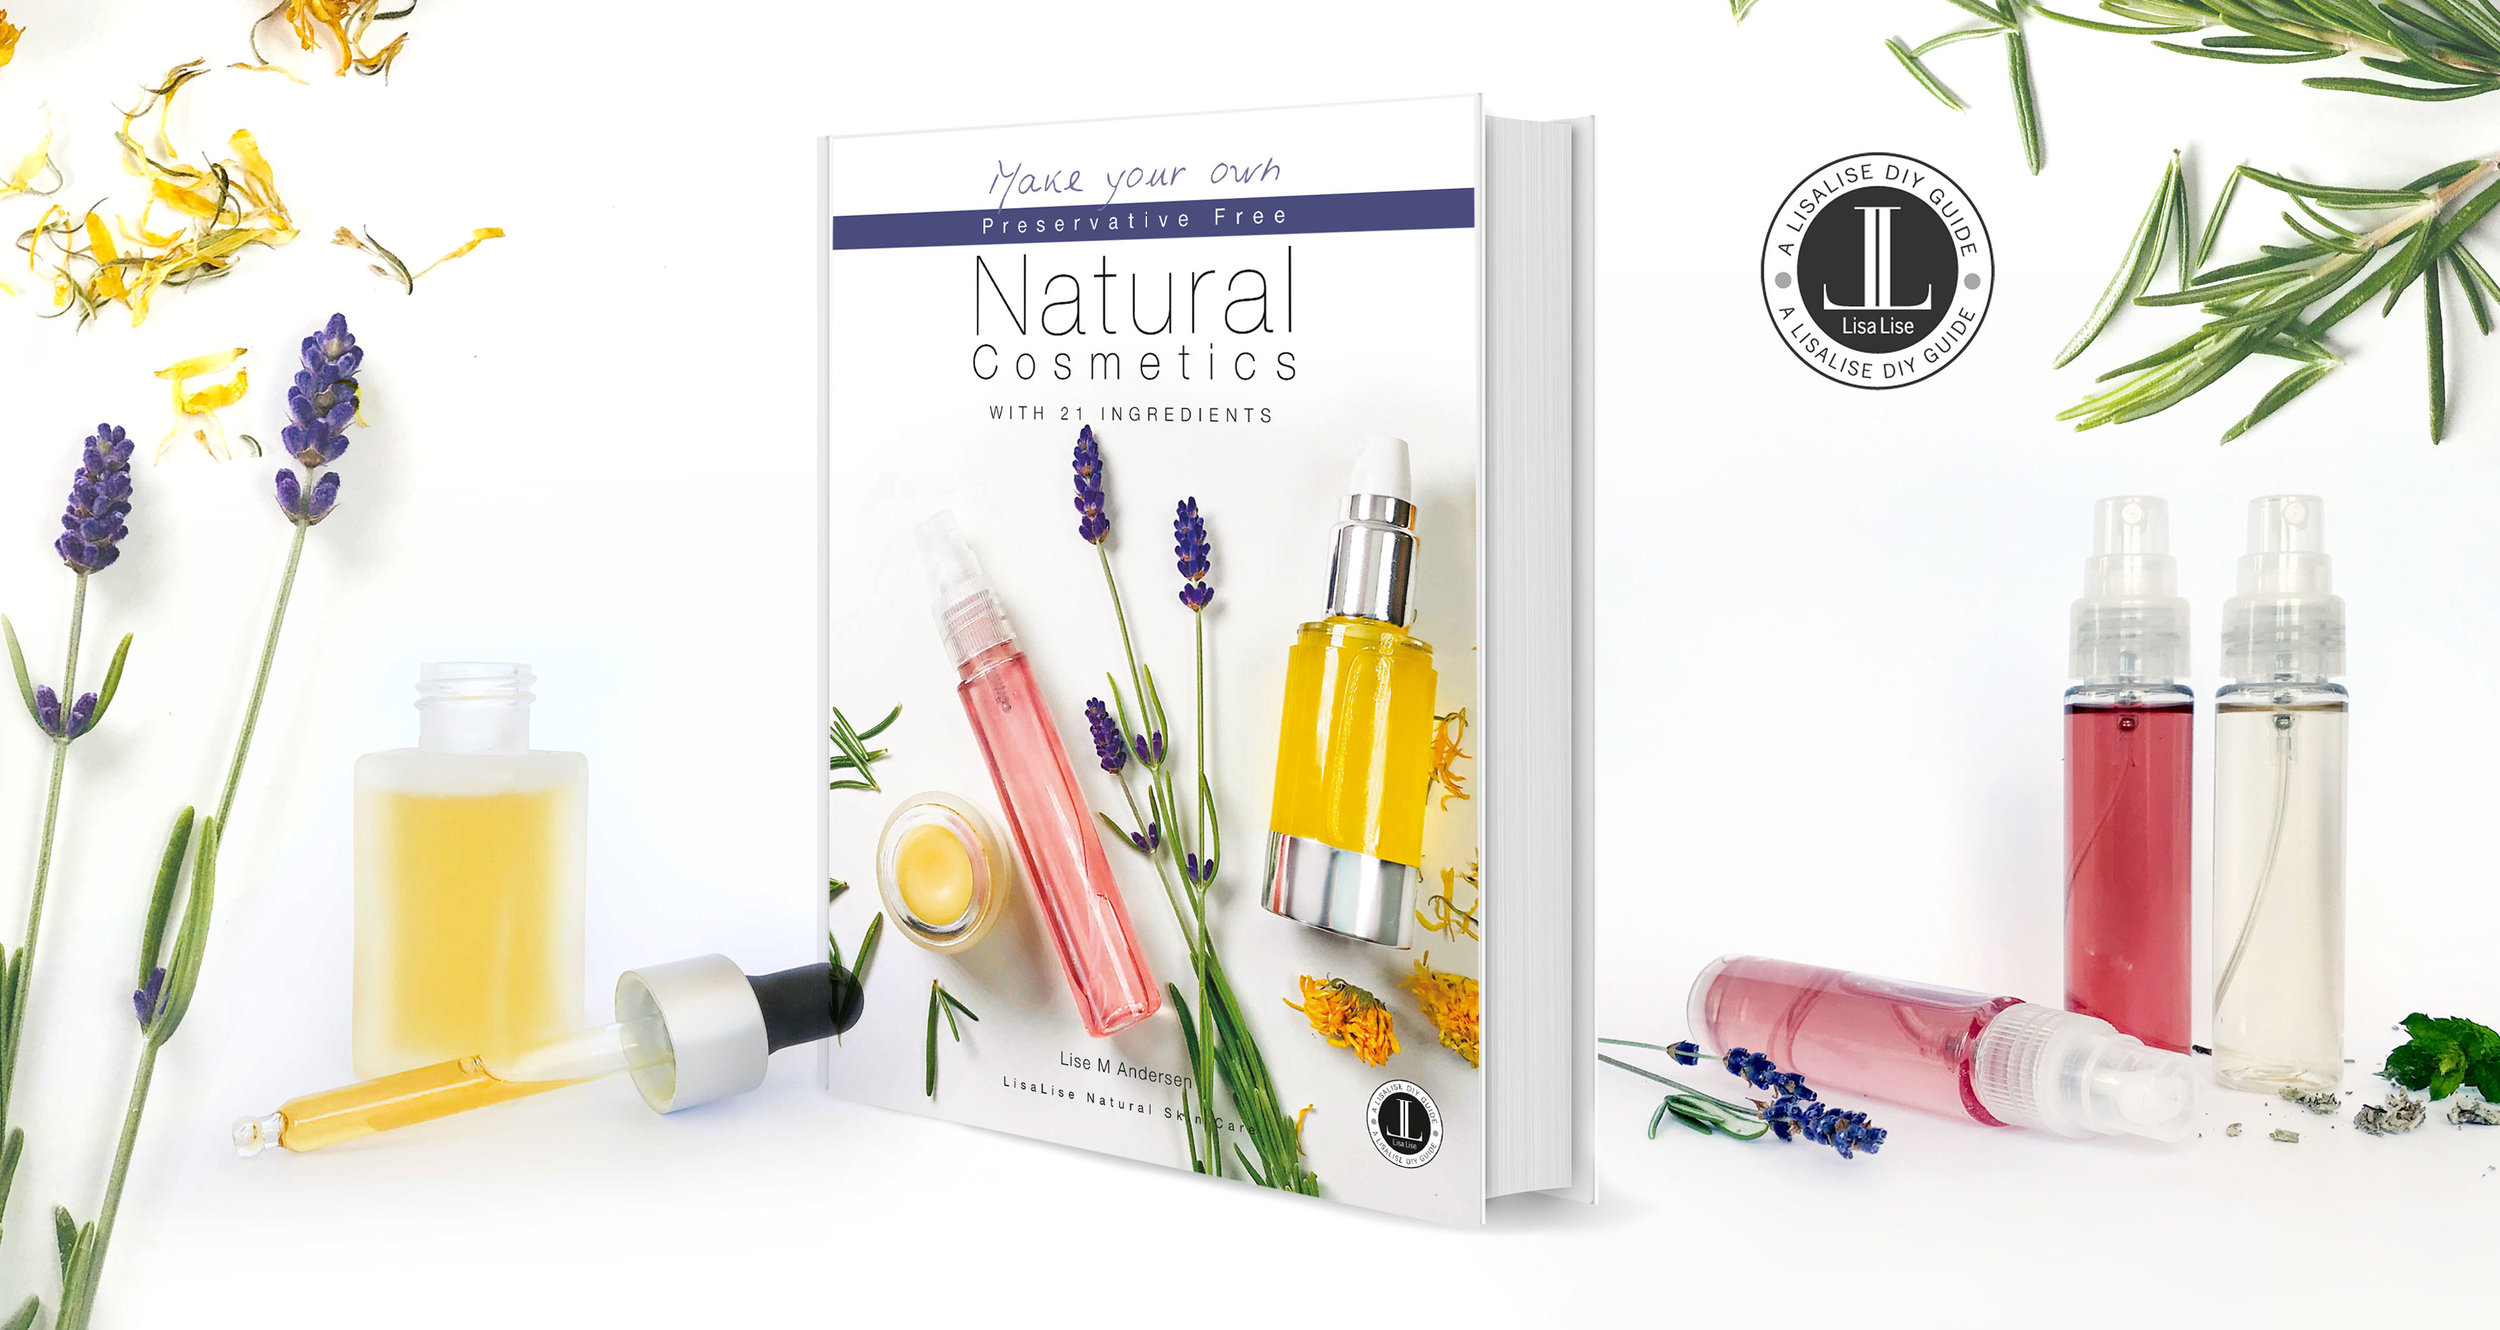 Make Your Own Preservative Free Natural Cosmetics With 21 Ingredients —  LisaLise Pure Natural Skincare